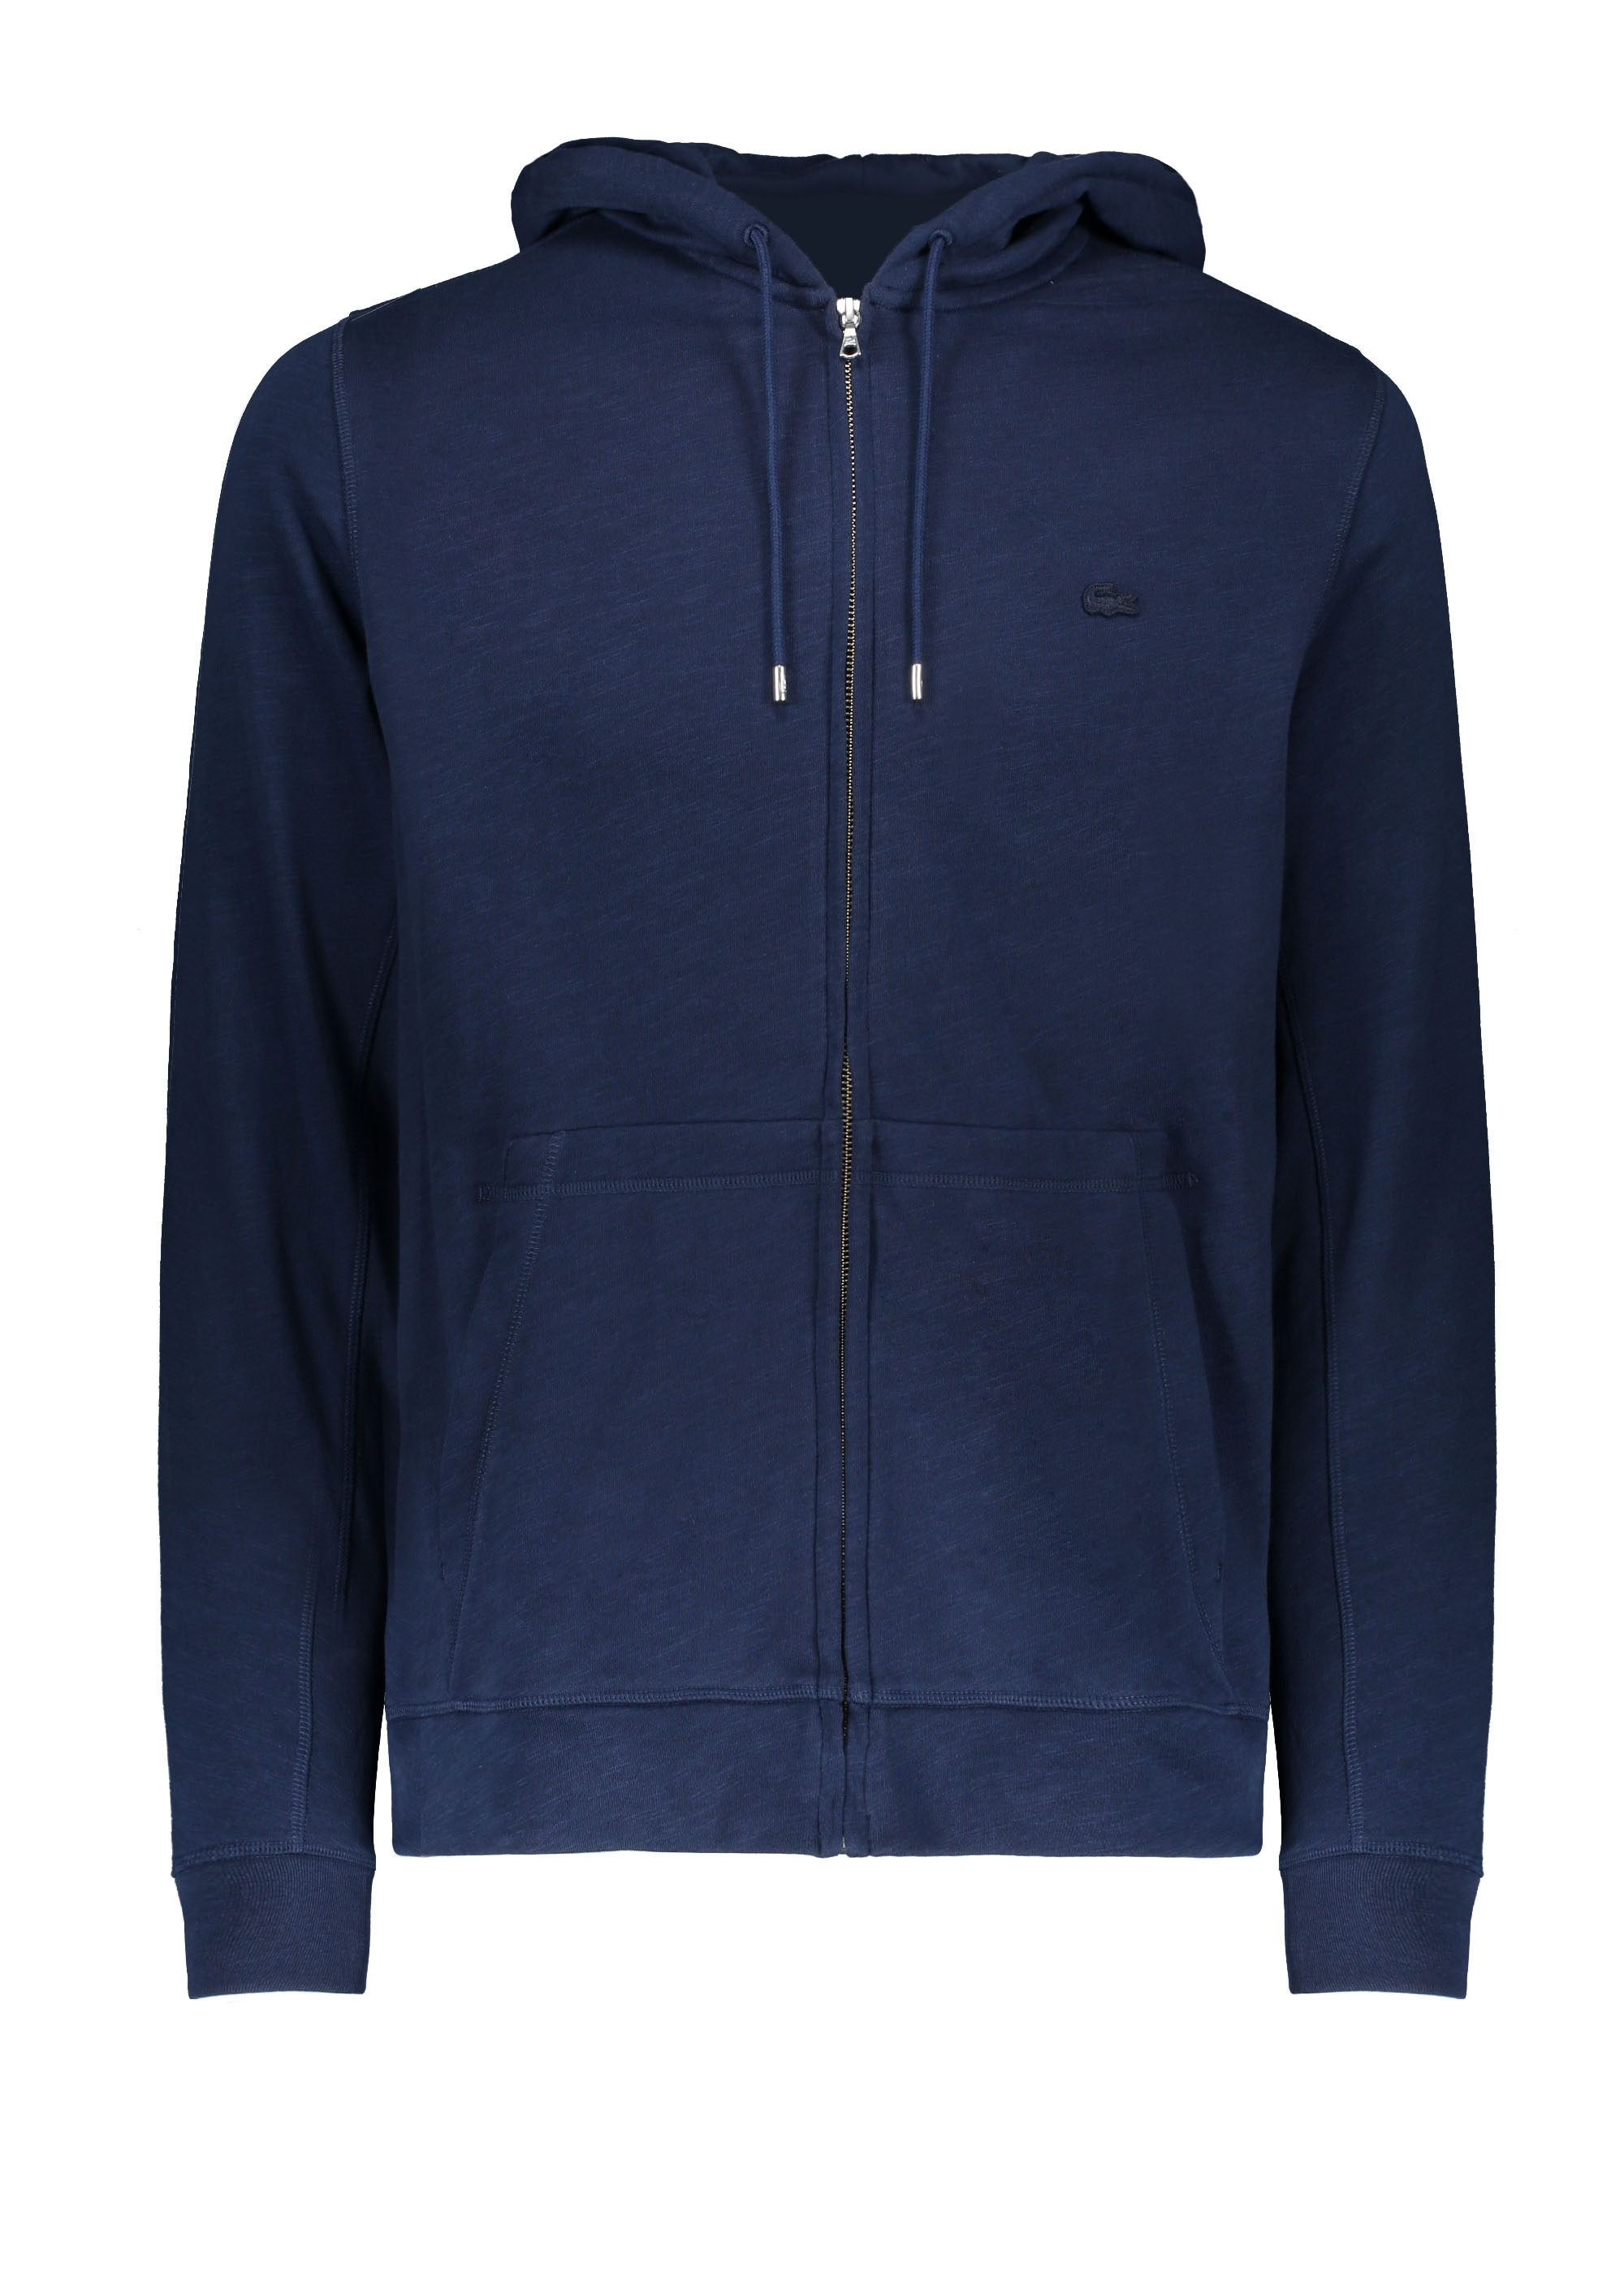 4e3aab95437d Lacoste Zip Hoody - Navy Blue - Triads Mens from Triads UK